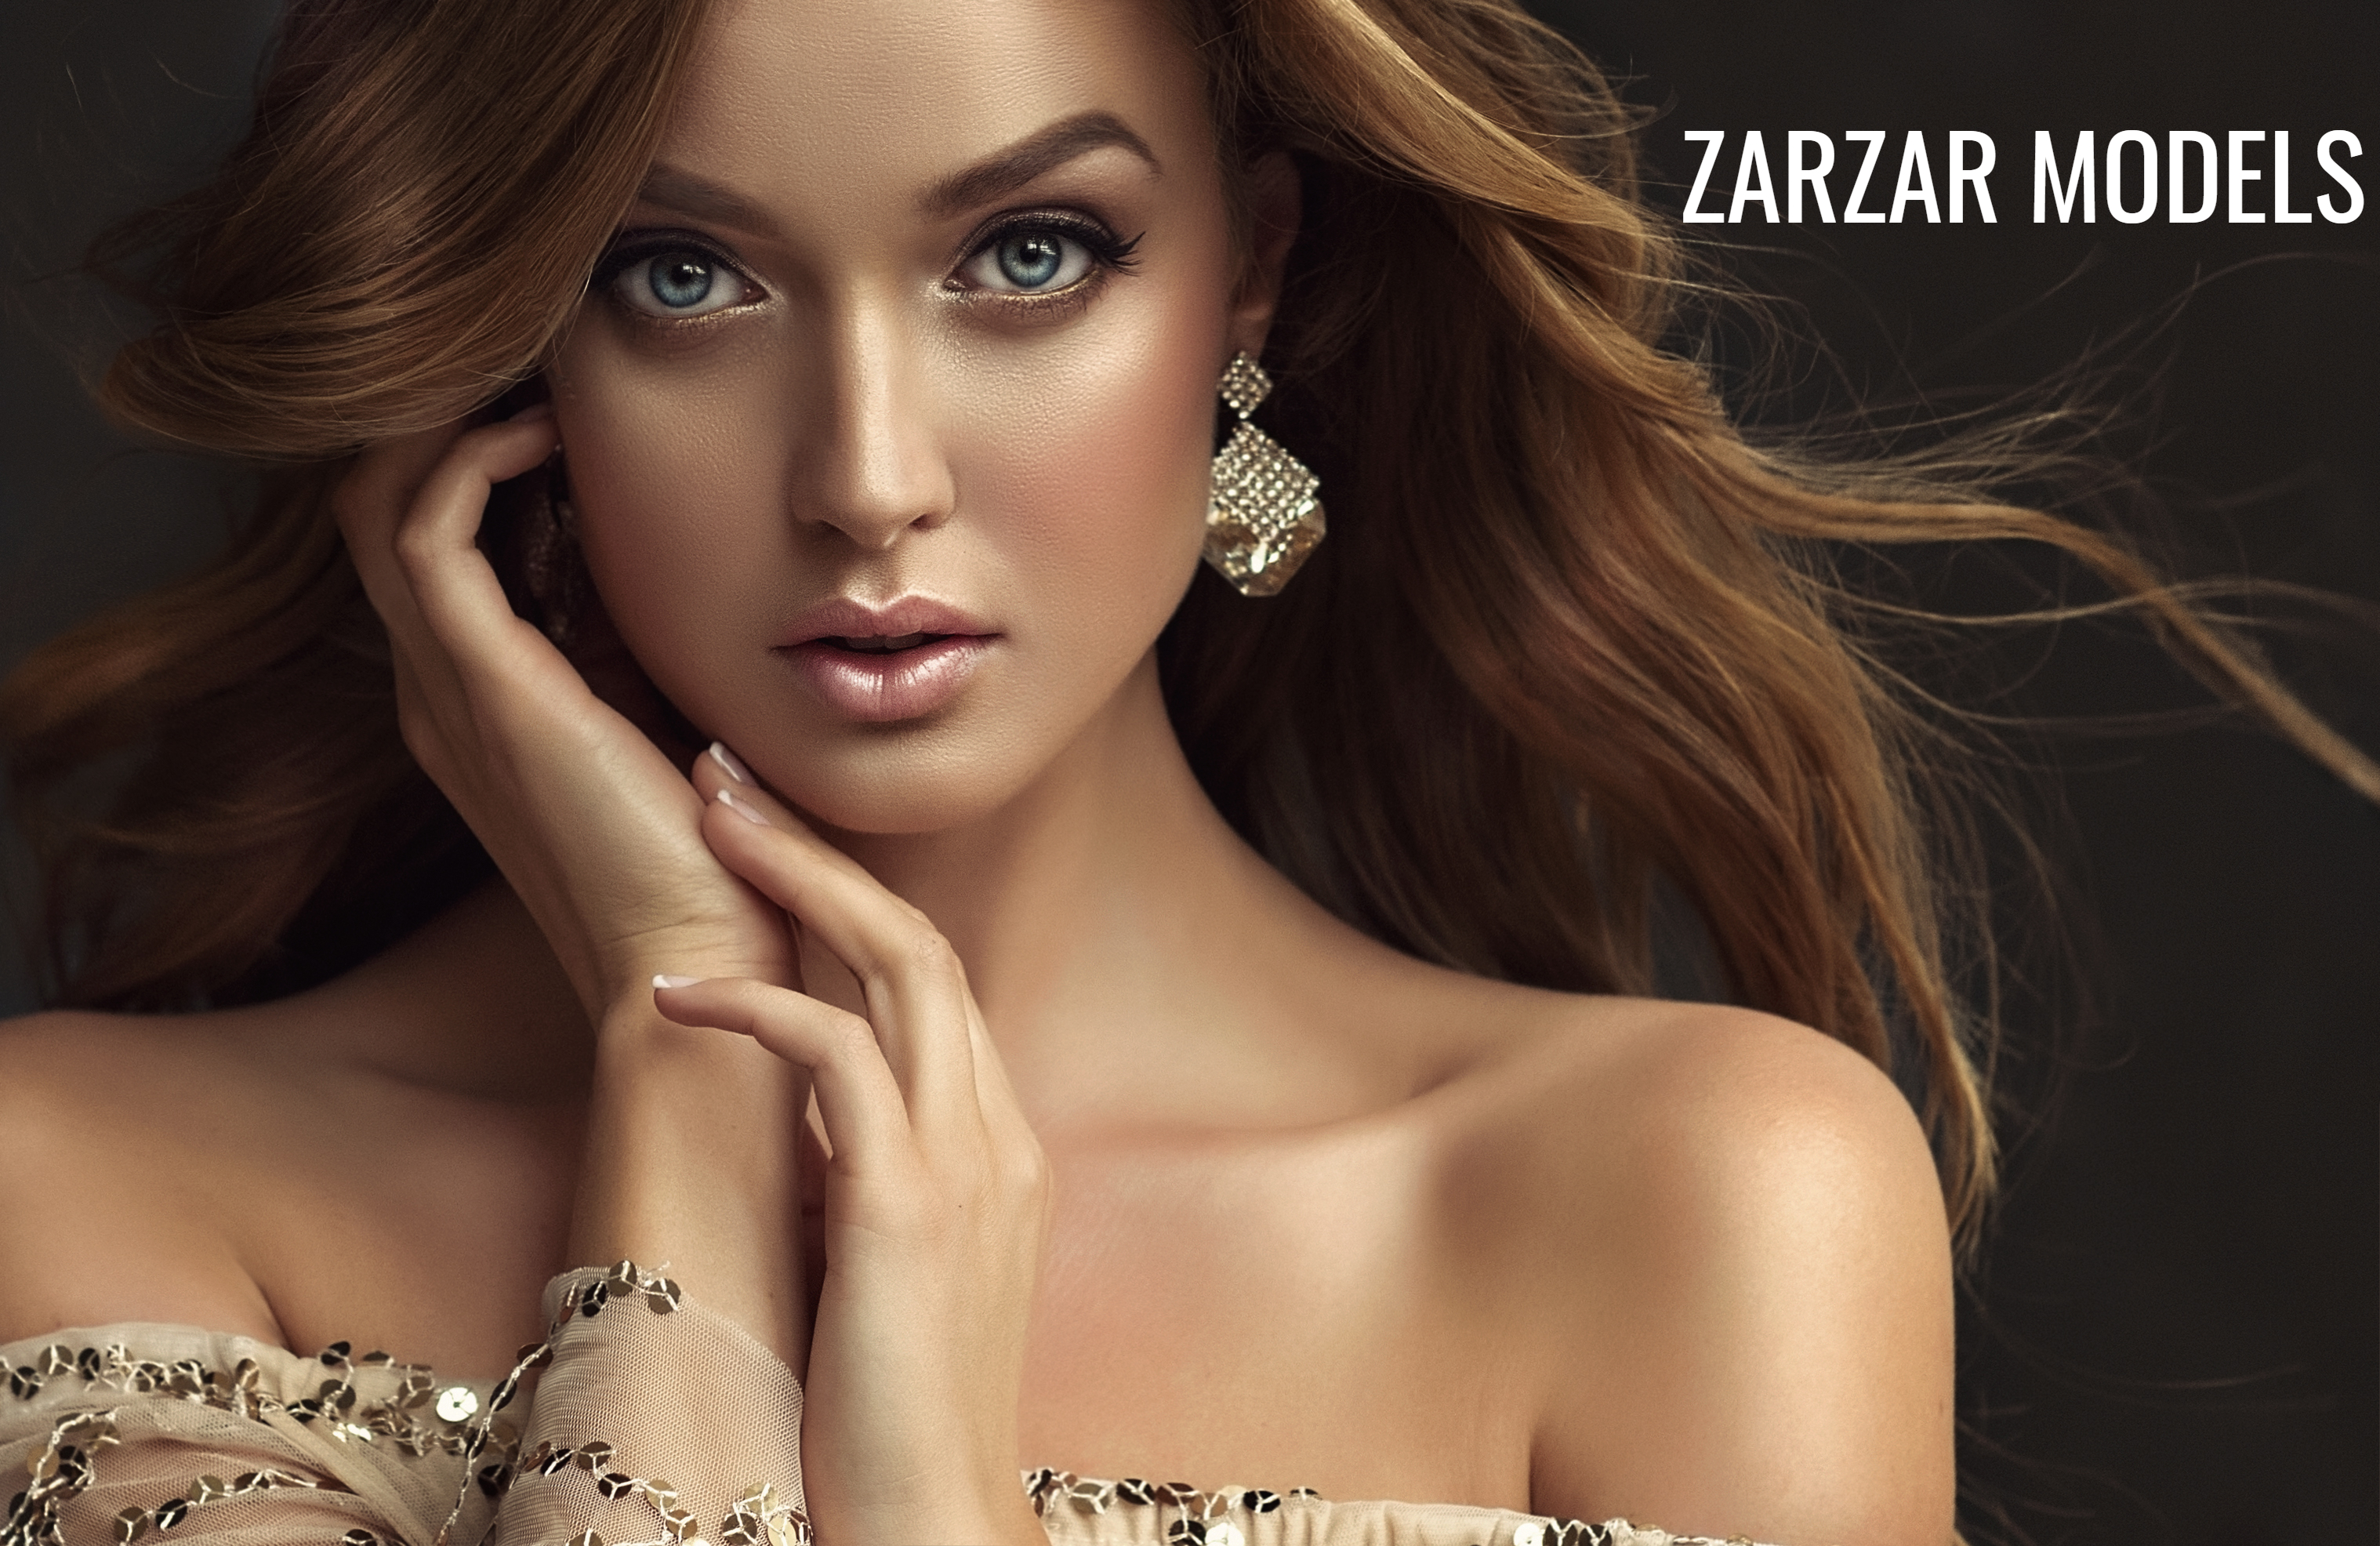 ZARZAR MODELS | Top Modeling Agency For Women, Teens, & Teenagers (Teenage Girls). ZARZAR MODELS | Los Angeles | New York | San Diego | Las Vegas | Miami | Phoenix | San Francisco | London | Paris | Milan | Sao Paulo | Tokyo.